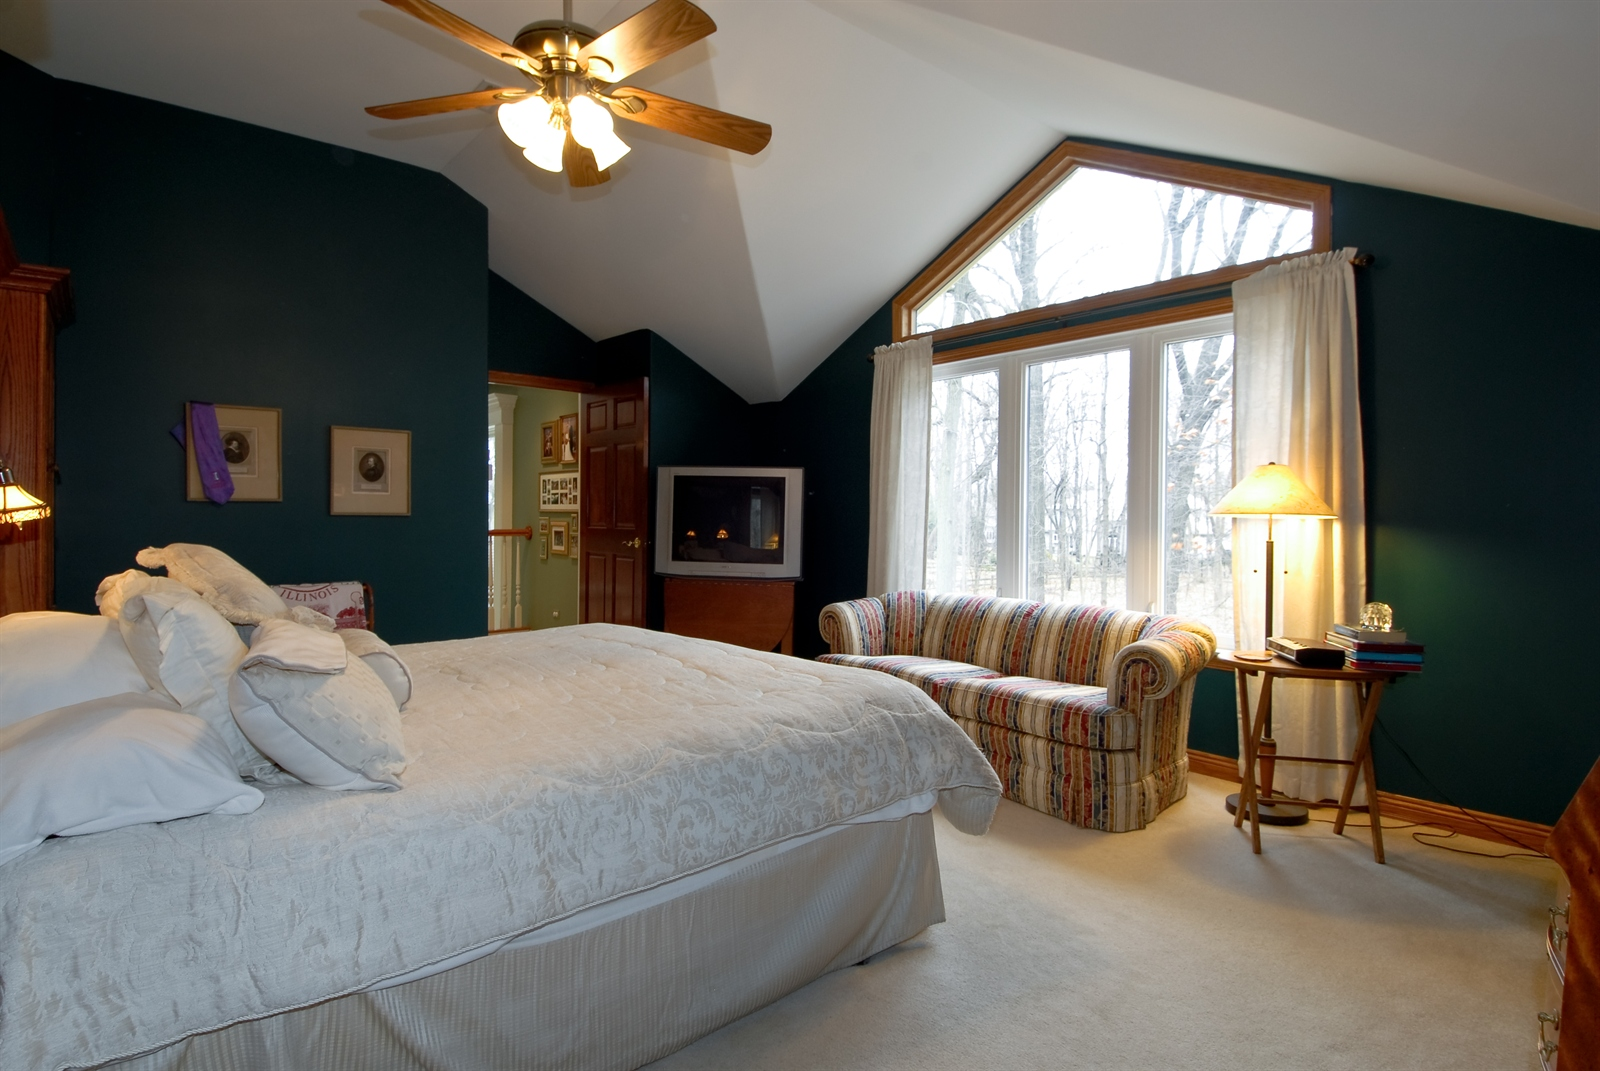 Real Estate Photography - 620 E Gartner Rd, Naperville, IL, 60540 - Master Bedroom